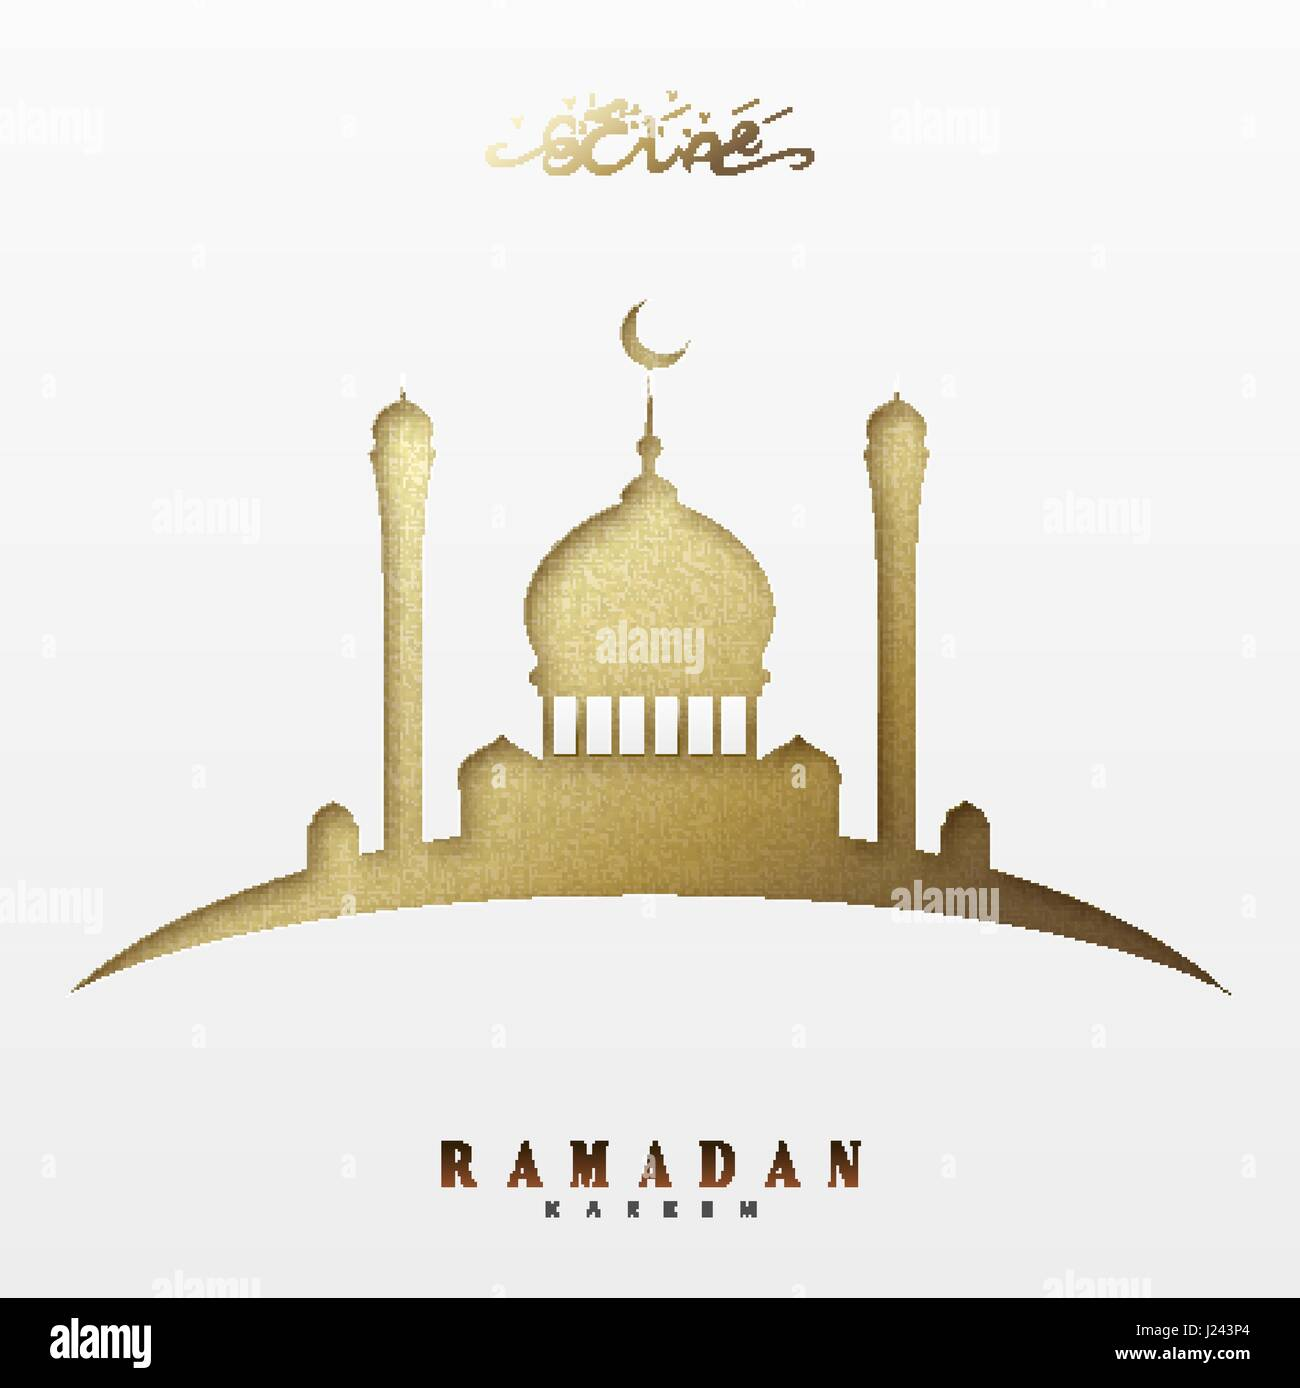 Ramadan greeting card with arabic calligraphy ramadan kareem ramadan greeting card with arabic calligraphy ramadan kareem islamic background with mosques kristyandbryce Images